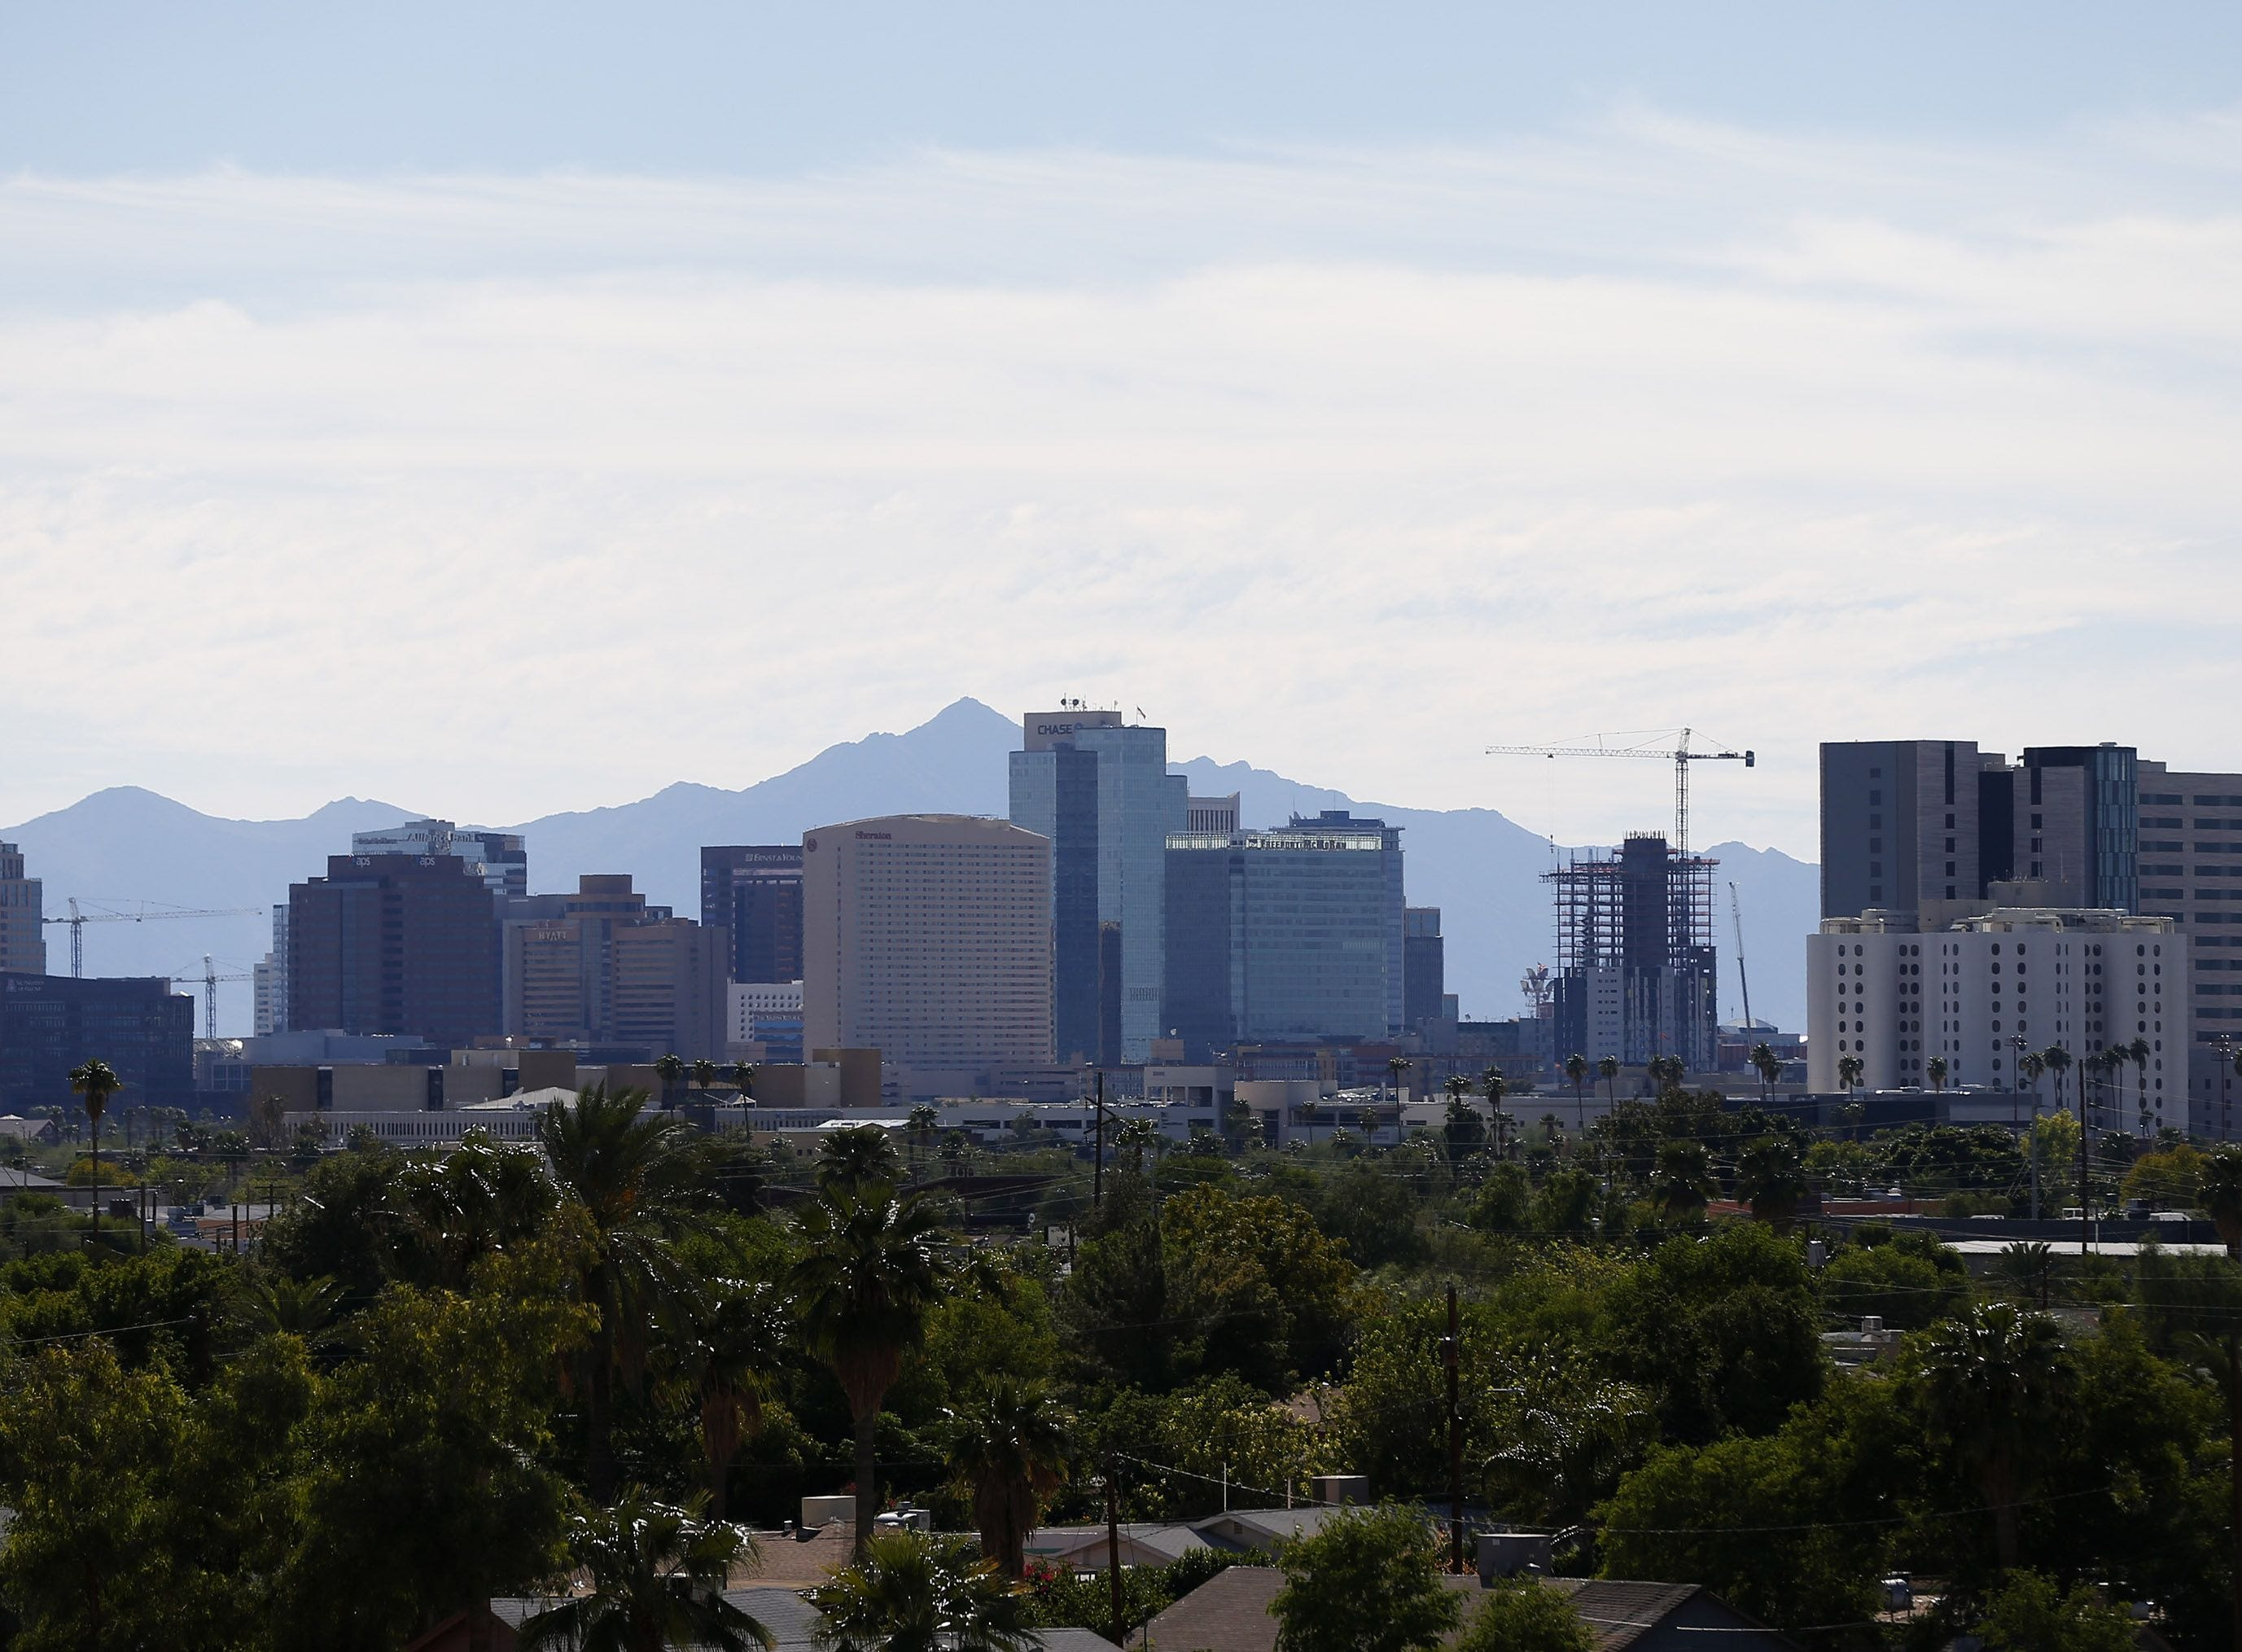 FASTEST GROWING CITIES: Two Arizona cities are the fastest growing in the United States, according to population estimates from the U.S. Census Bureau. Buckeye's population saw the largest percentage growth of any city in the country. Meanwhile, Phoenix saw the largest numeric increase during that time frame.